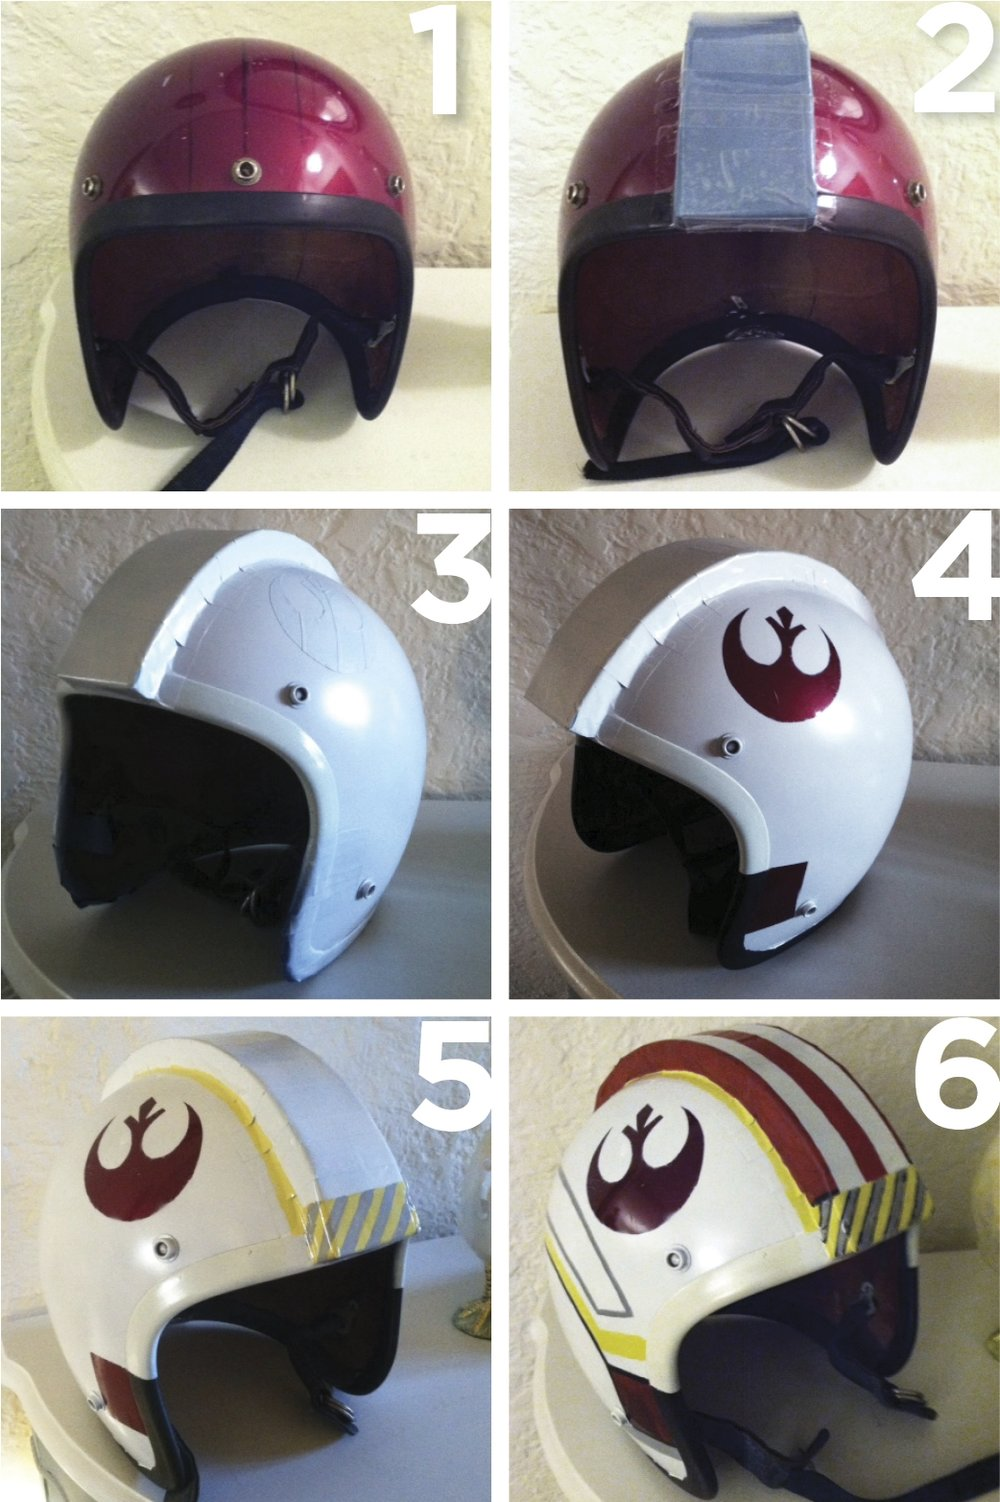 Helmet Tutorial!